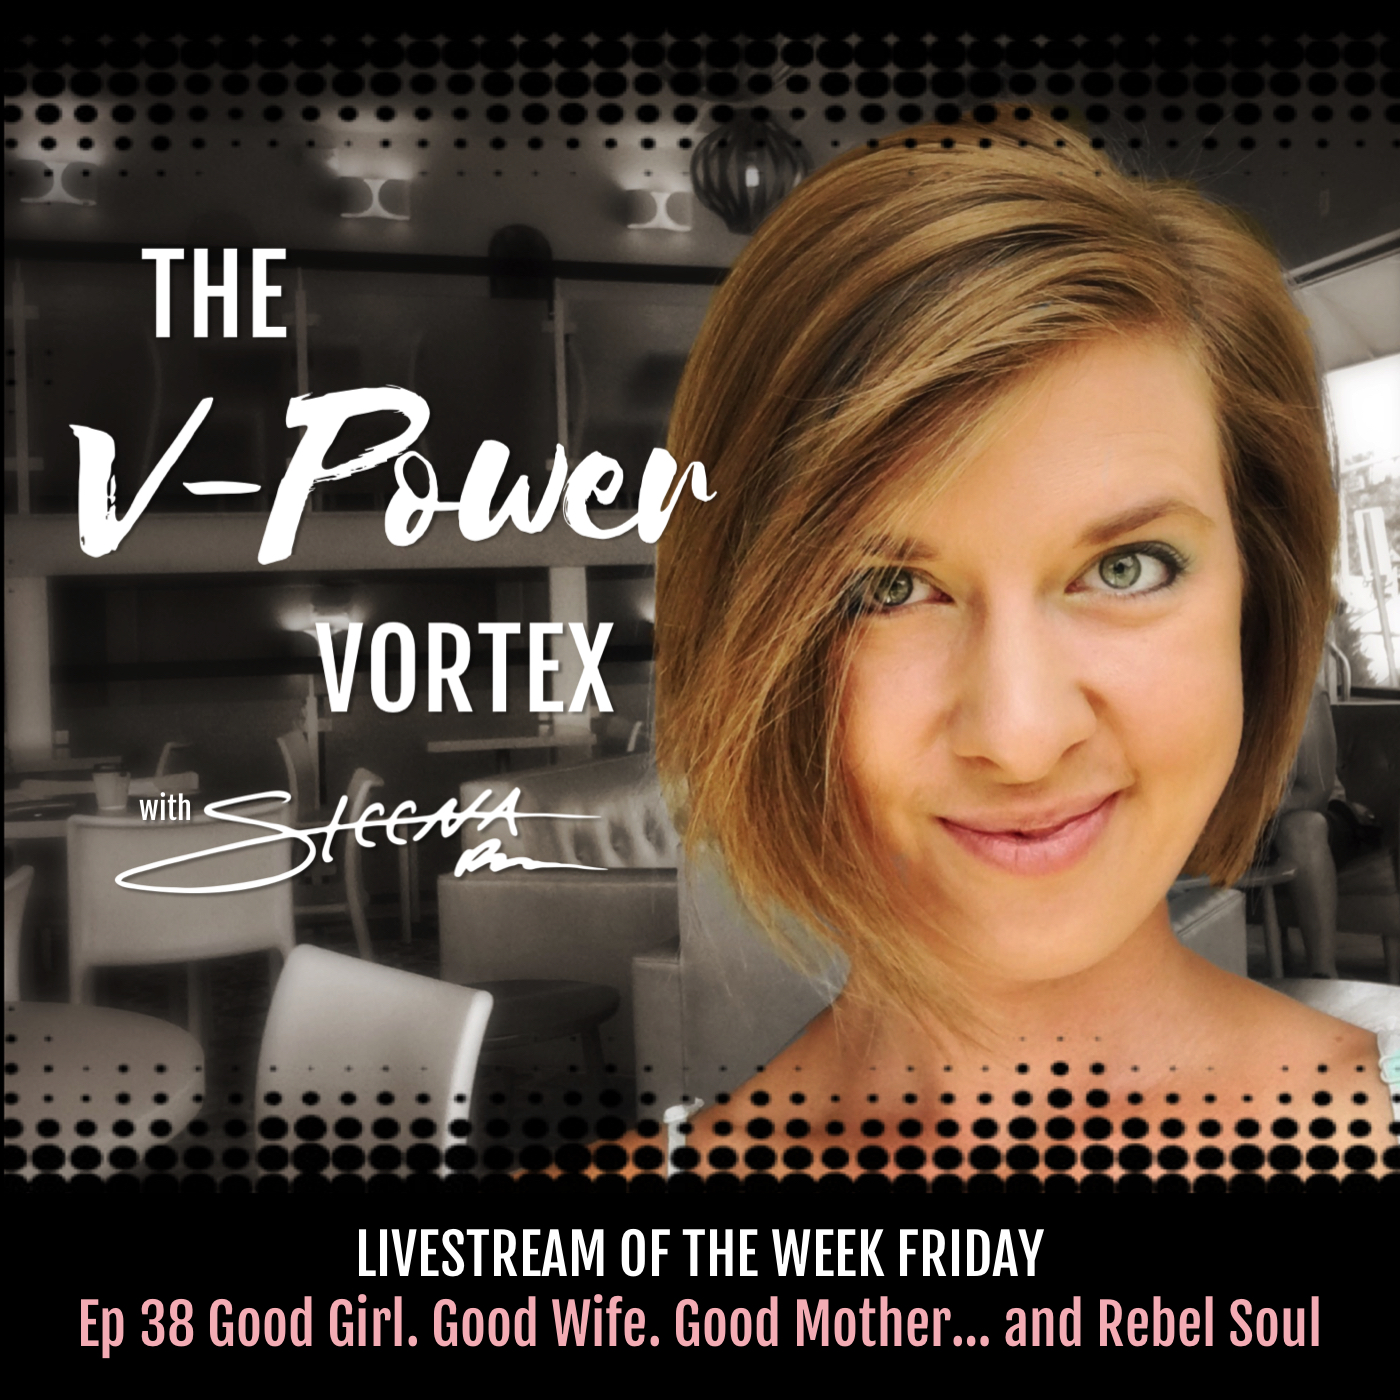 Ep 38 Good Girl. Good Wife. Good Mother... and Rebel Soul - Livestream of the Week Friday.jpeg